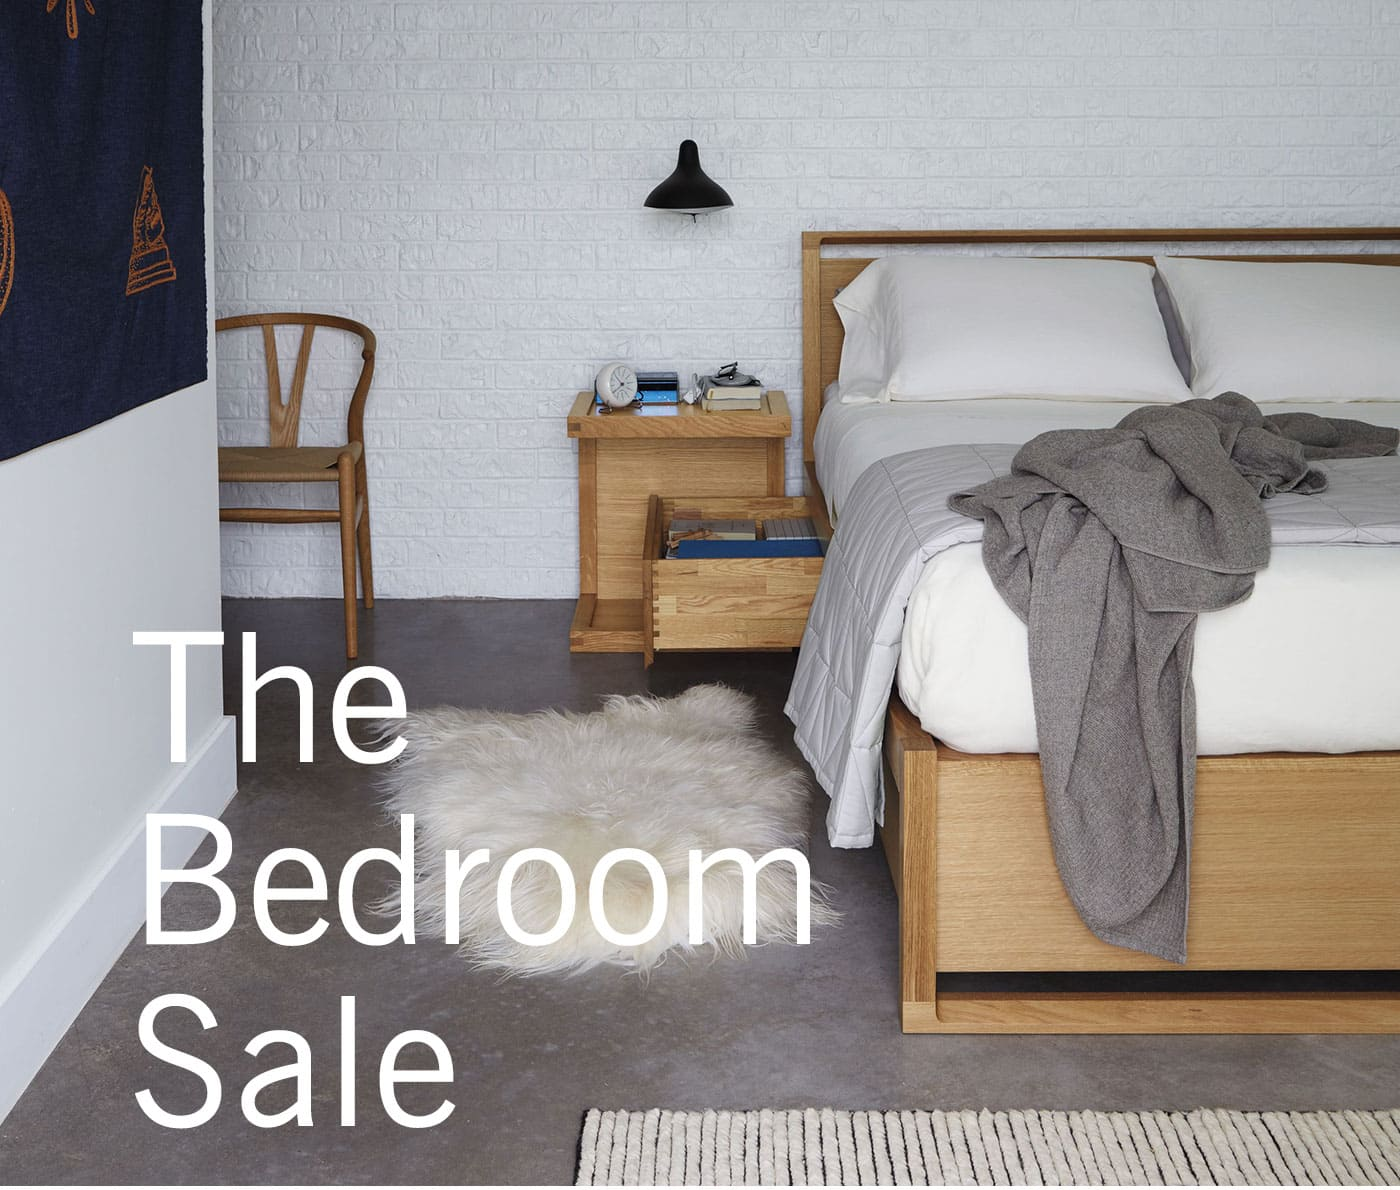 The Bedroom Sale